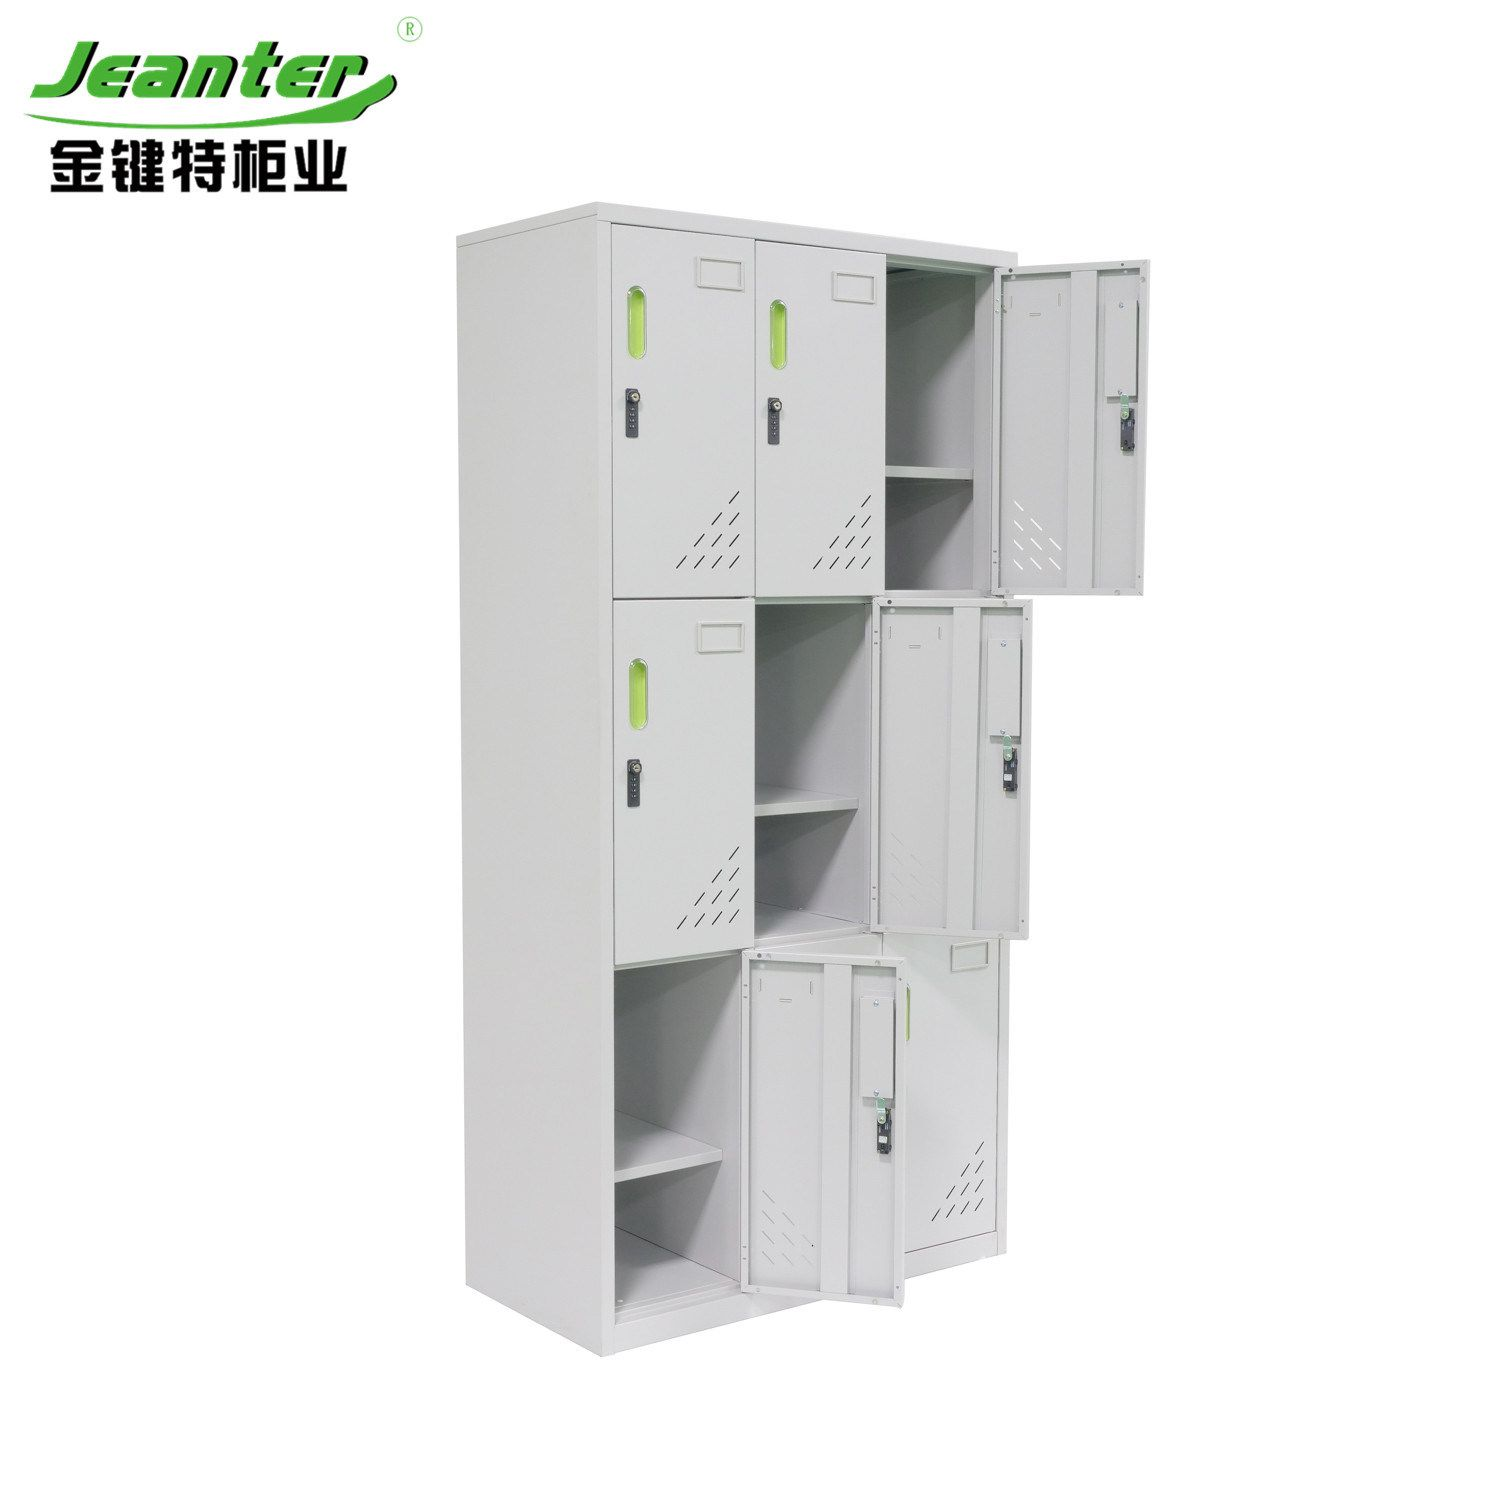 Hot Item Storage Furniture Cabinet Ventilated Metal Clothing Locker For Sale In 2020 Lockers For Sale Storage Furniture Storage